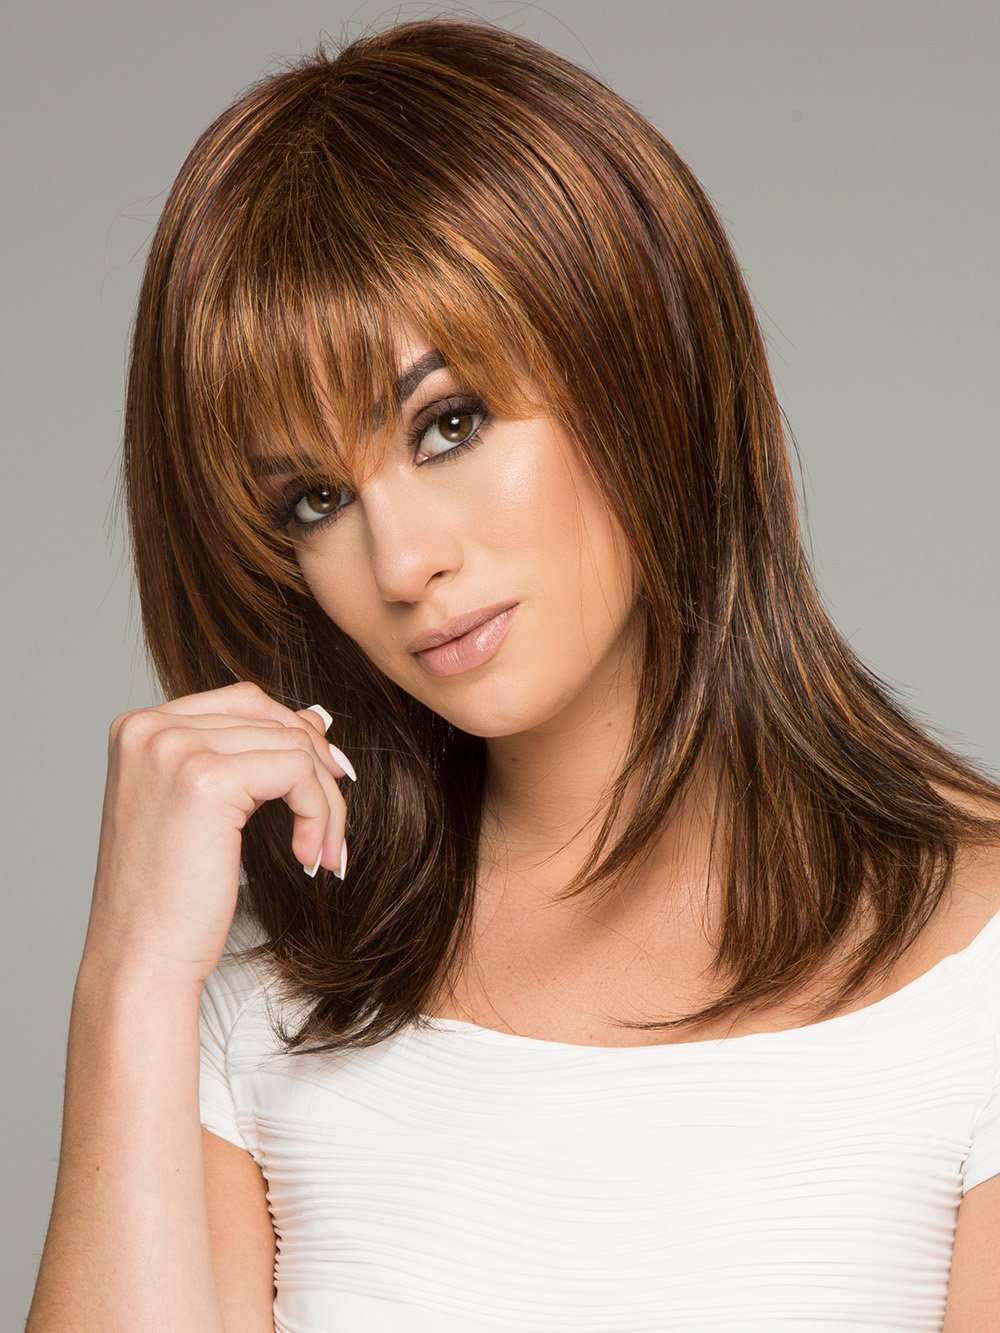 Enigma Capless Wig Color R25 GINGER BLONDE - Raquel Welch Wigs 10'' Long Synthetic Women's Blunt Bang Jagged Ends Memory Cap Base